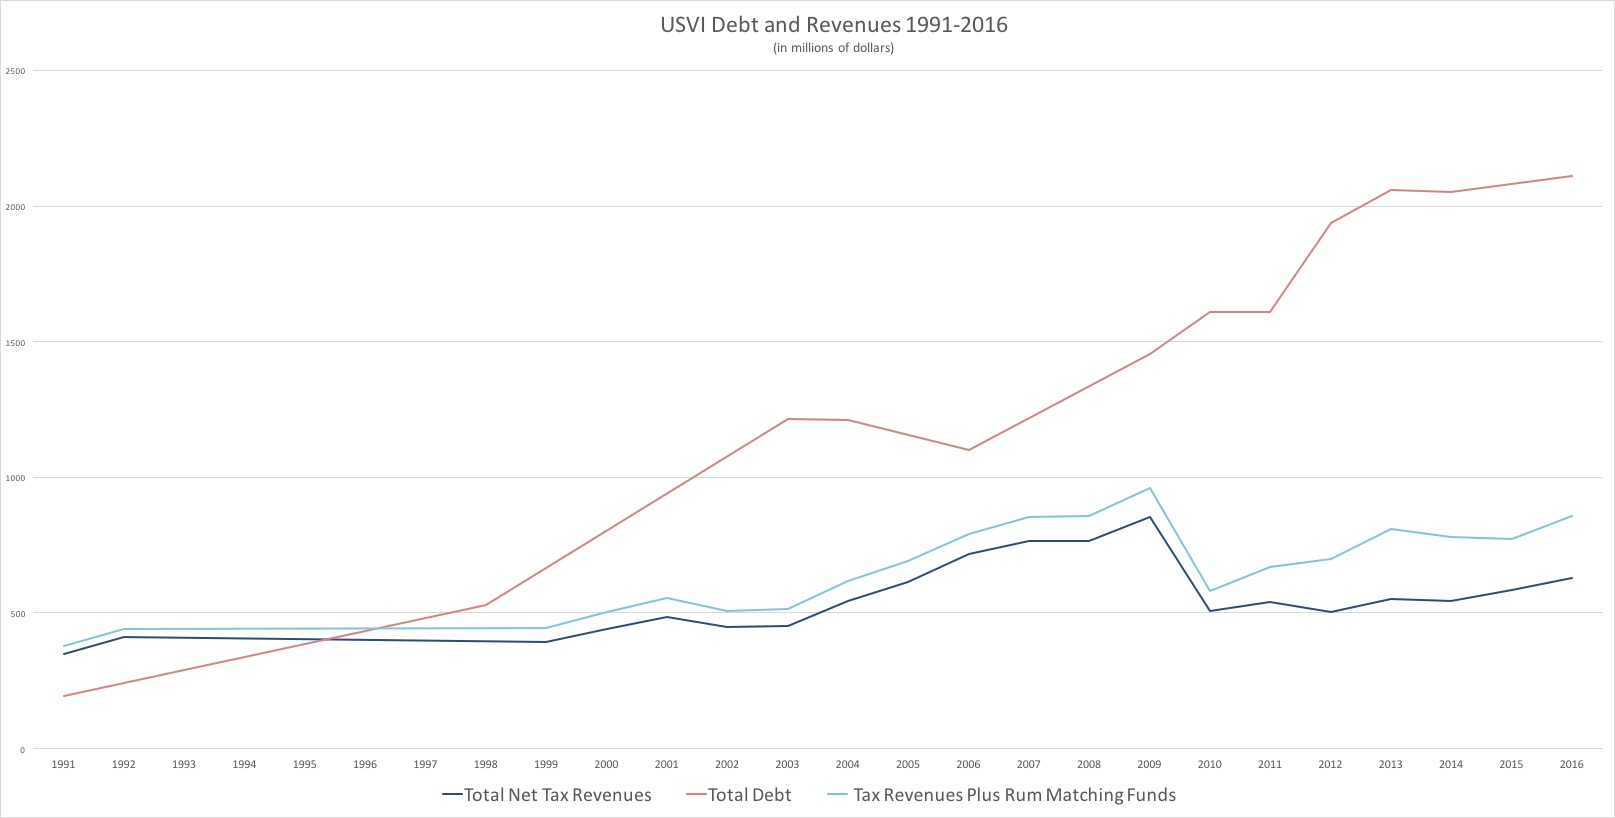 USVI Debt and Revenues. Data compiled from V.I. government budget documentation and other sources by Bill Kossler. (Click on image for larger view.)